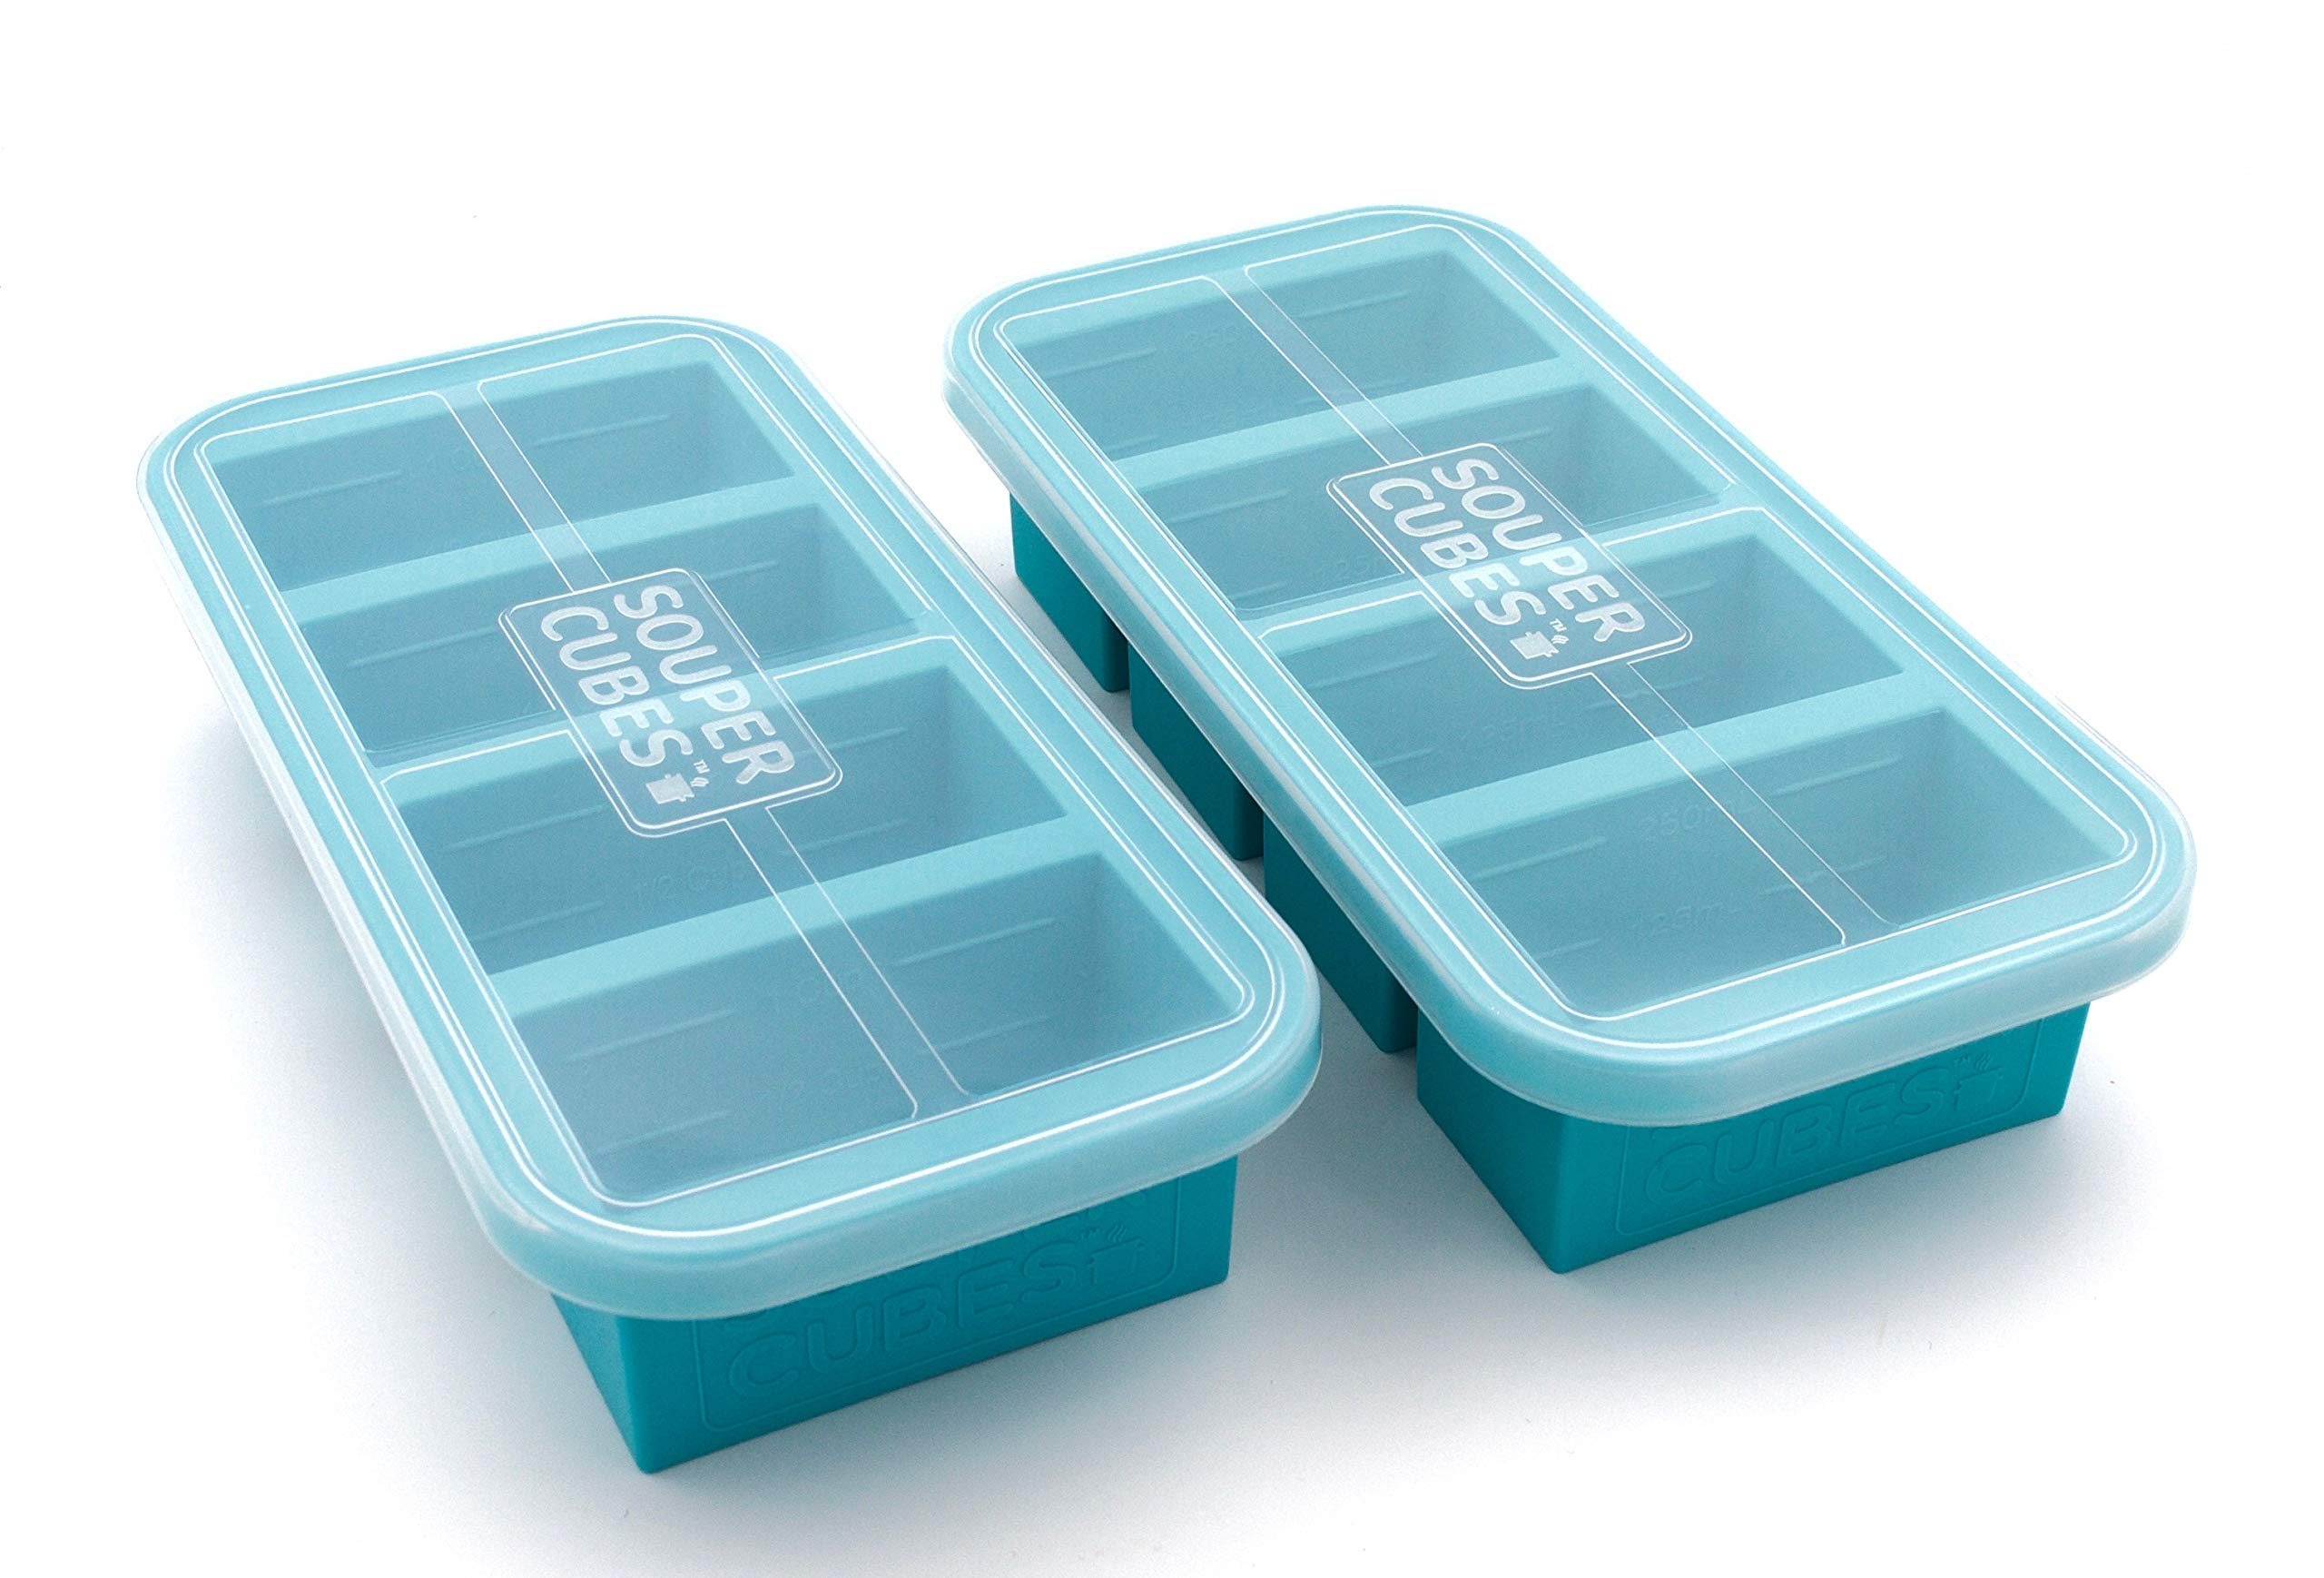 Souper Cubes Extra-Large Silicone Freezing Tray with Lid - 2 pack - makes 8 perfect 1cup portions - freeze soup broth or sauce by Souper Cubes